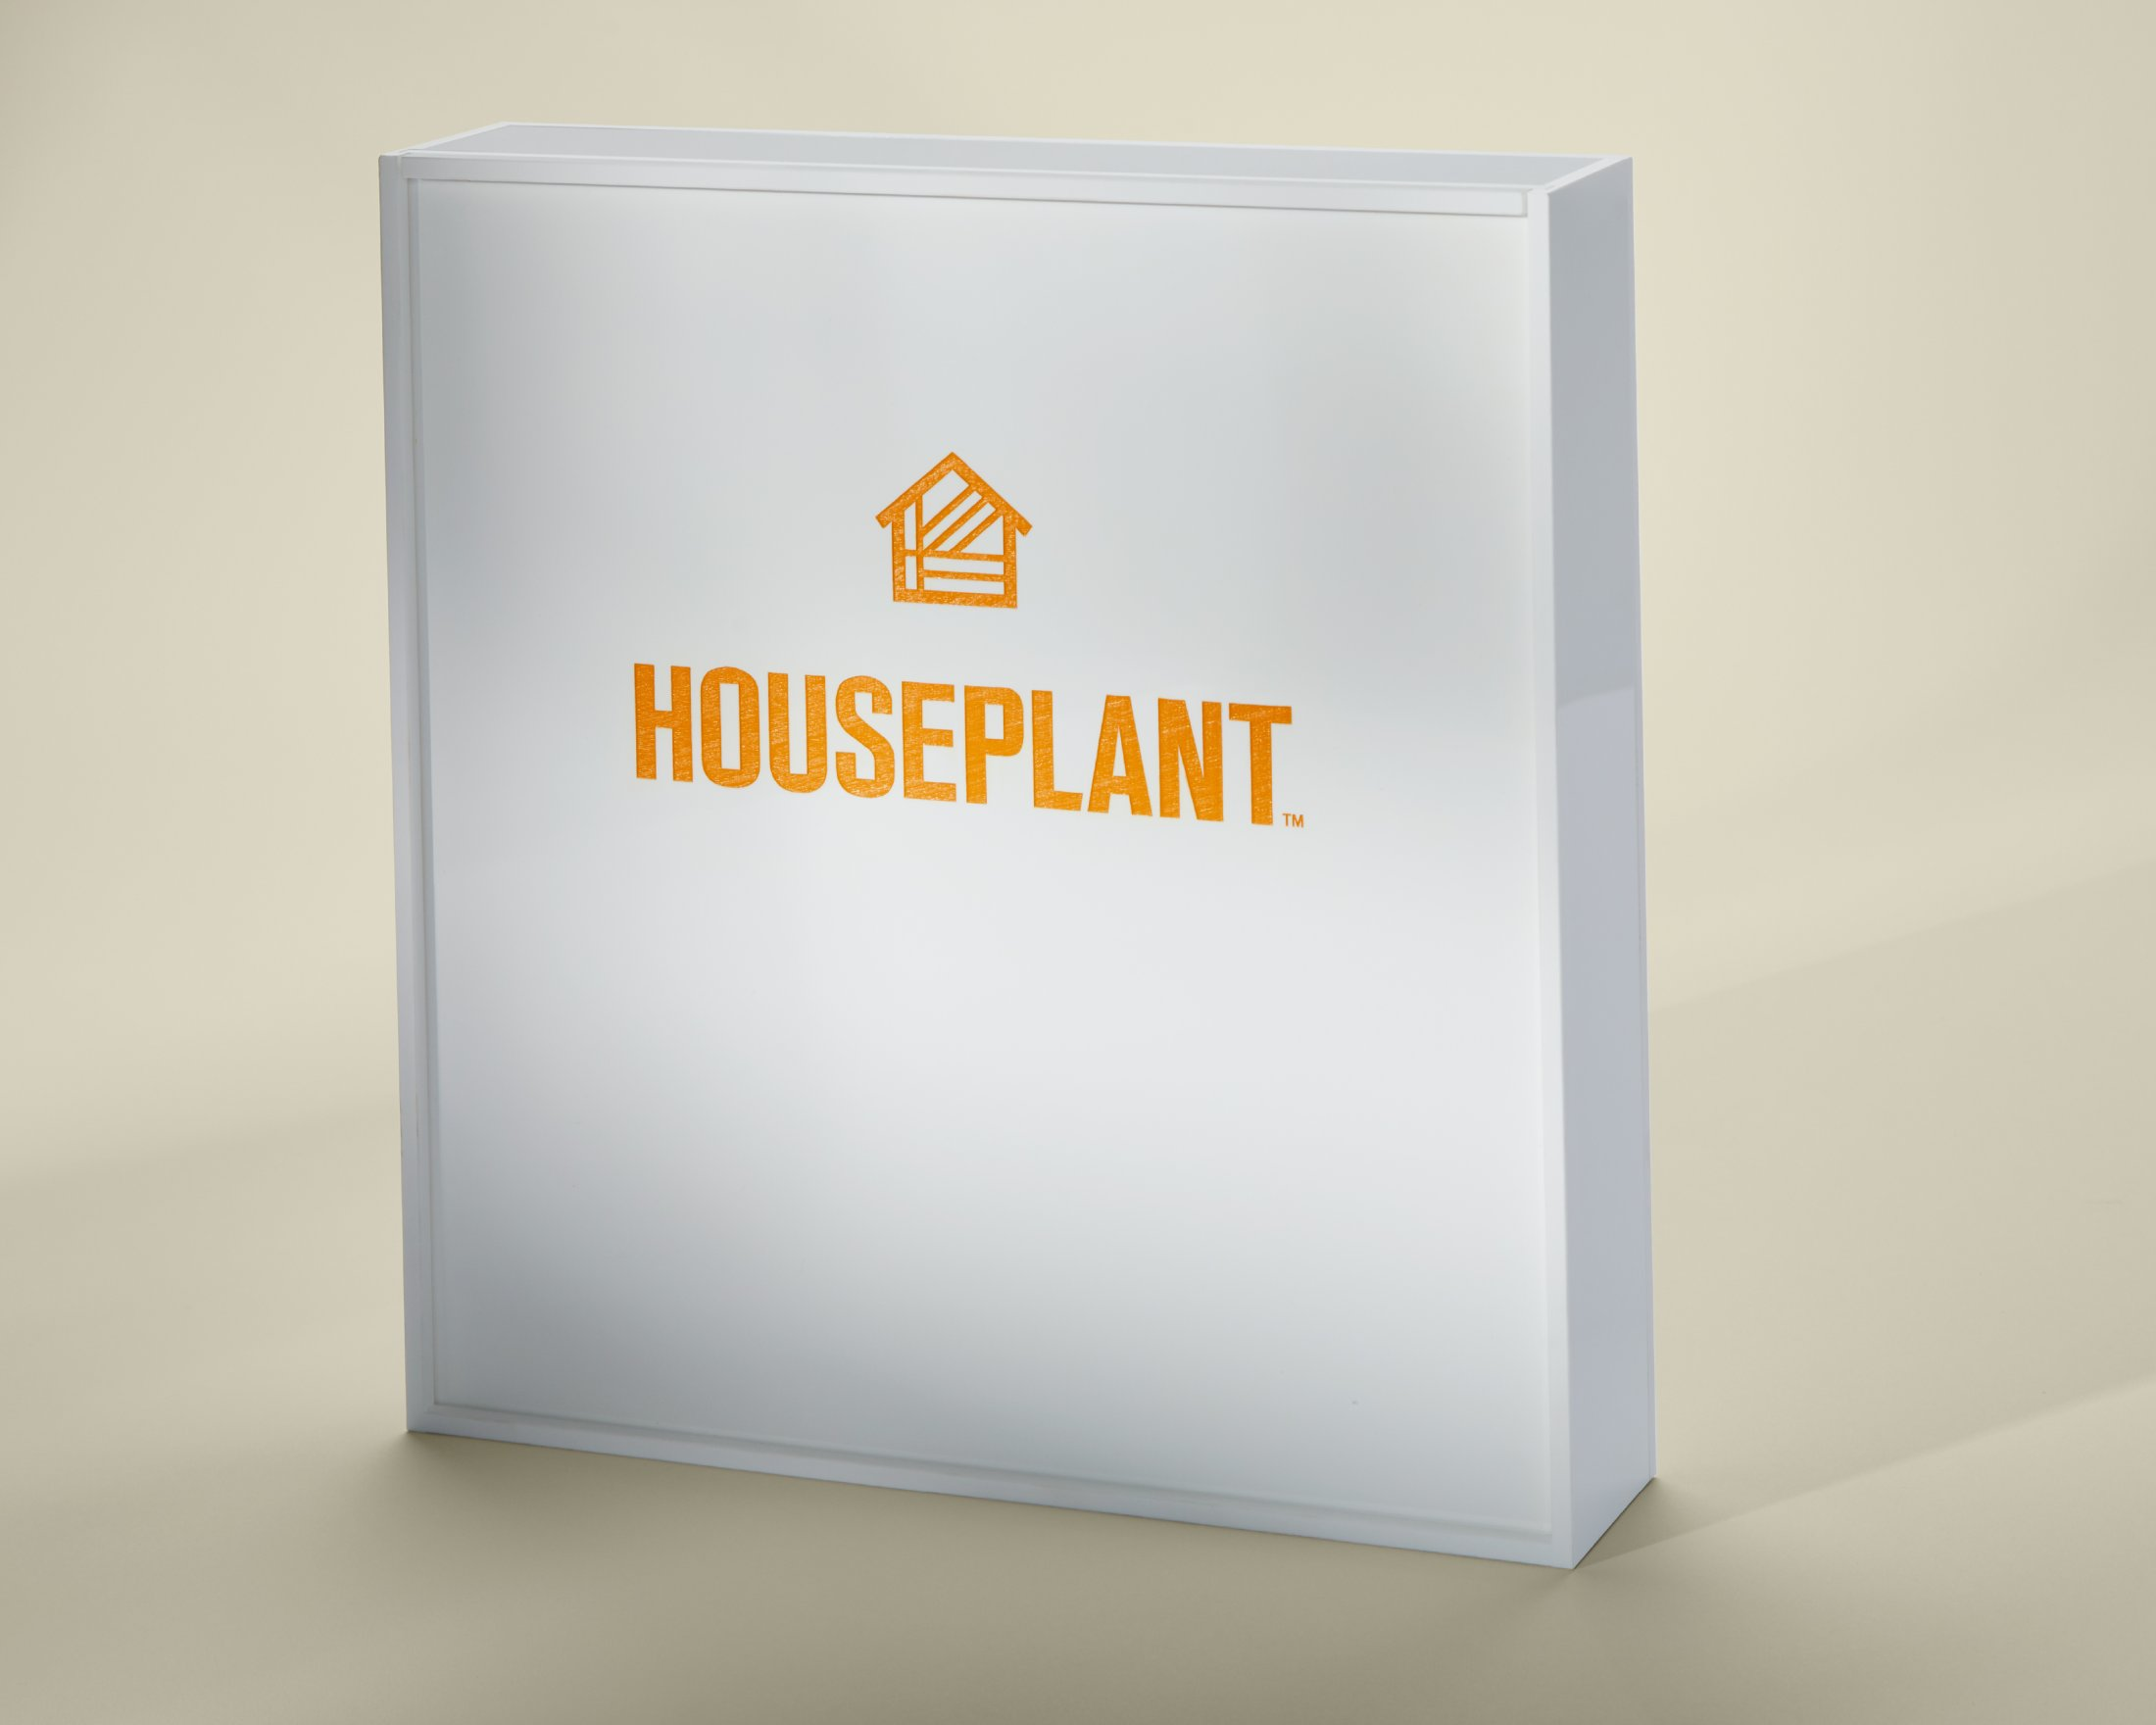 Houseplant: An Elevated Brand of Cannabis